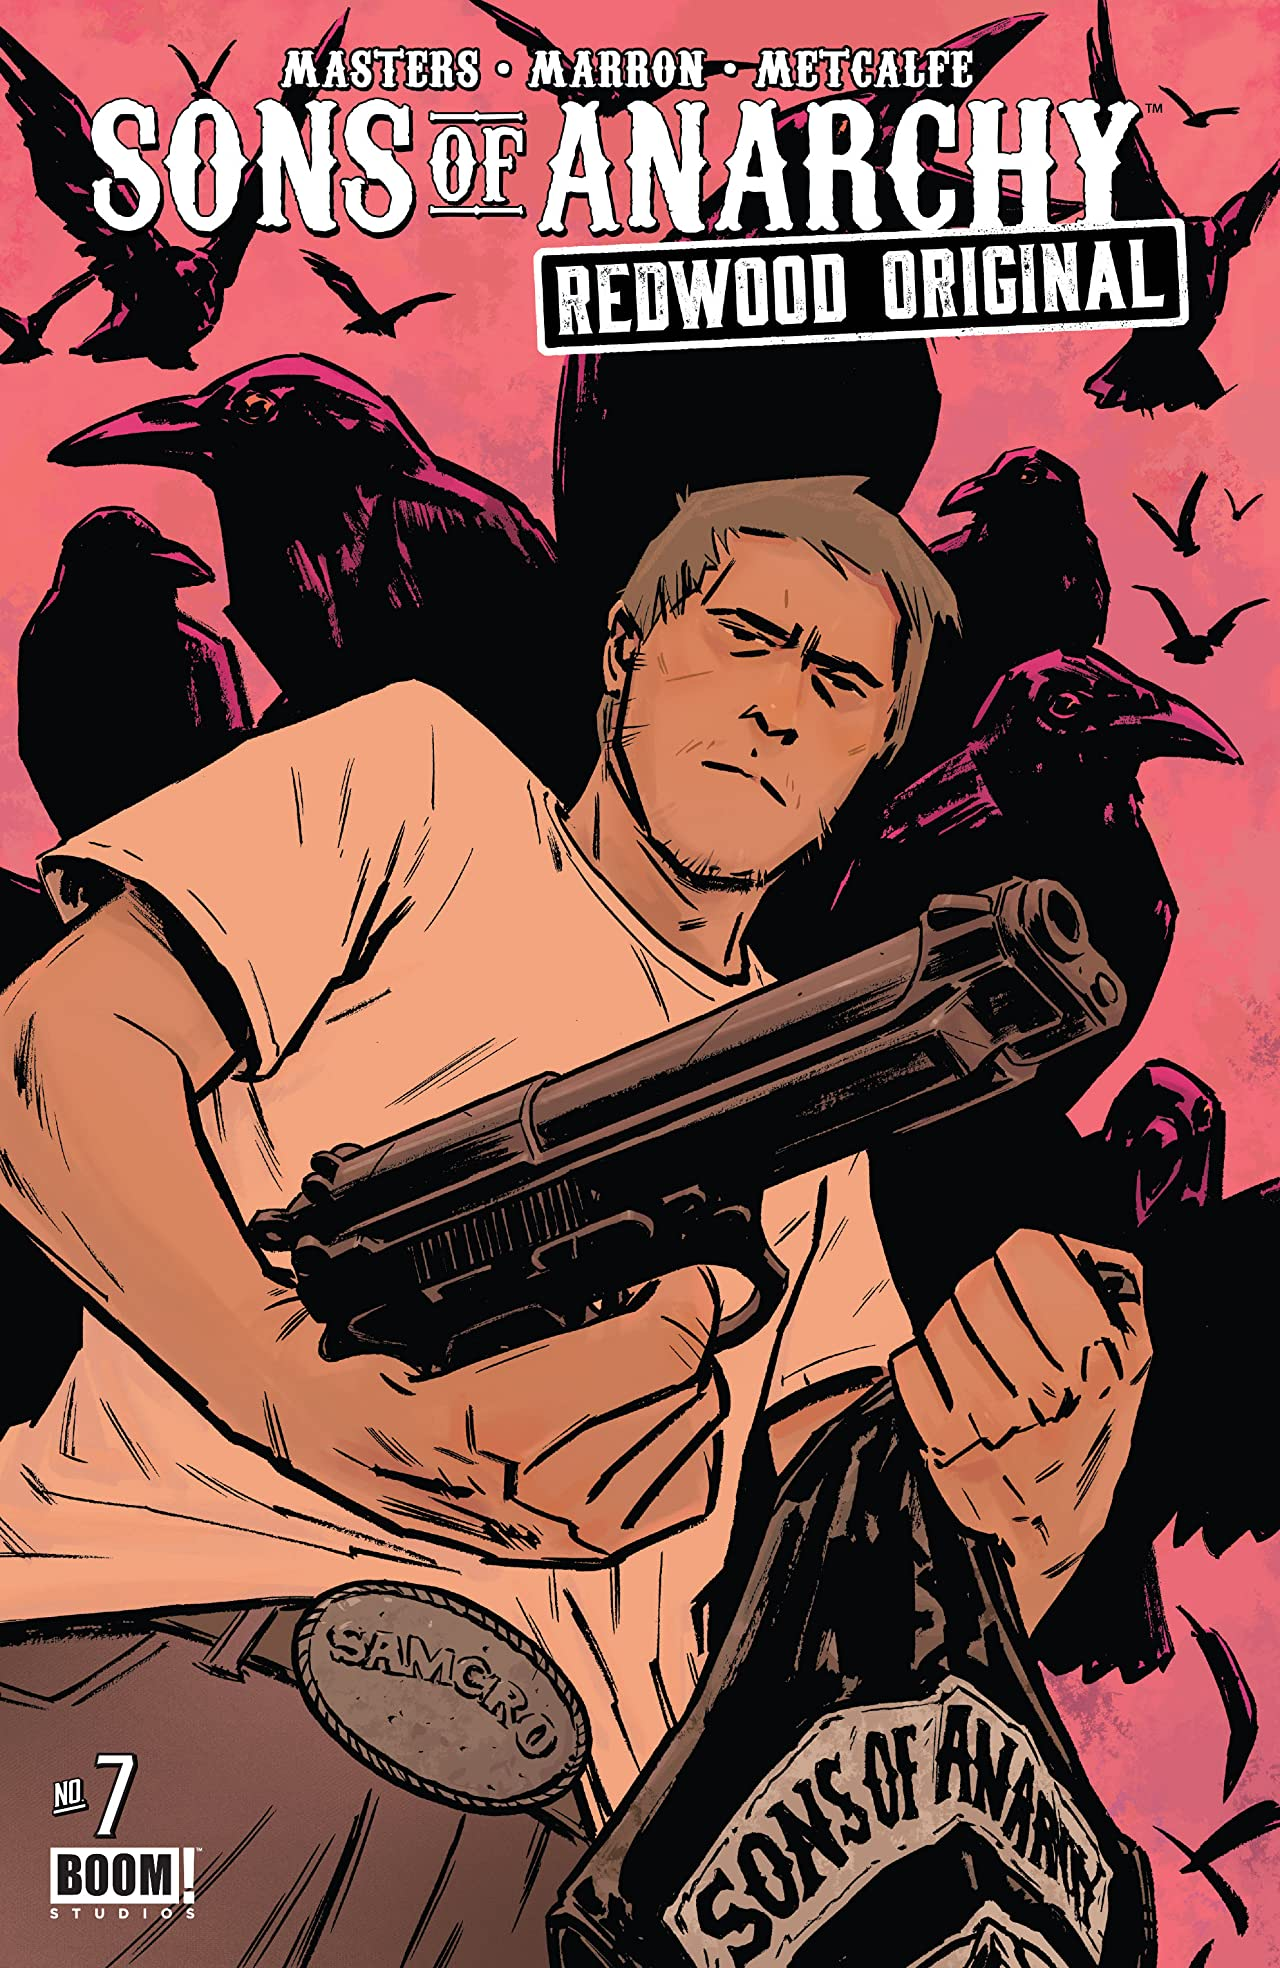 Sons of Anarchy: Redwood Original #7